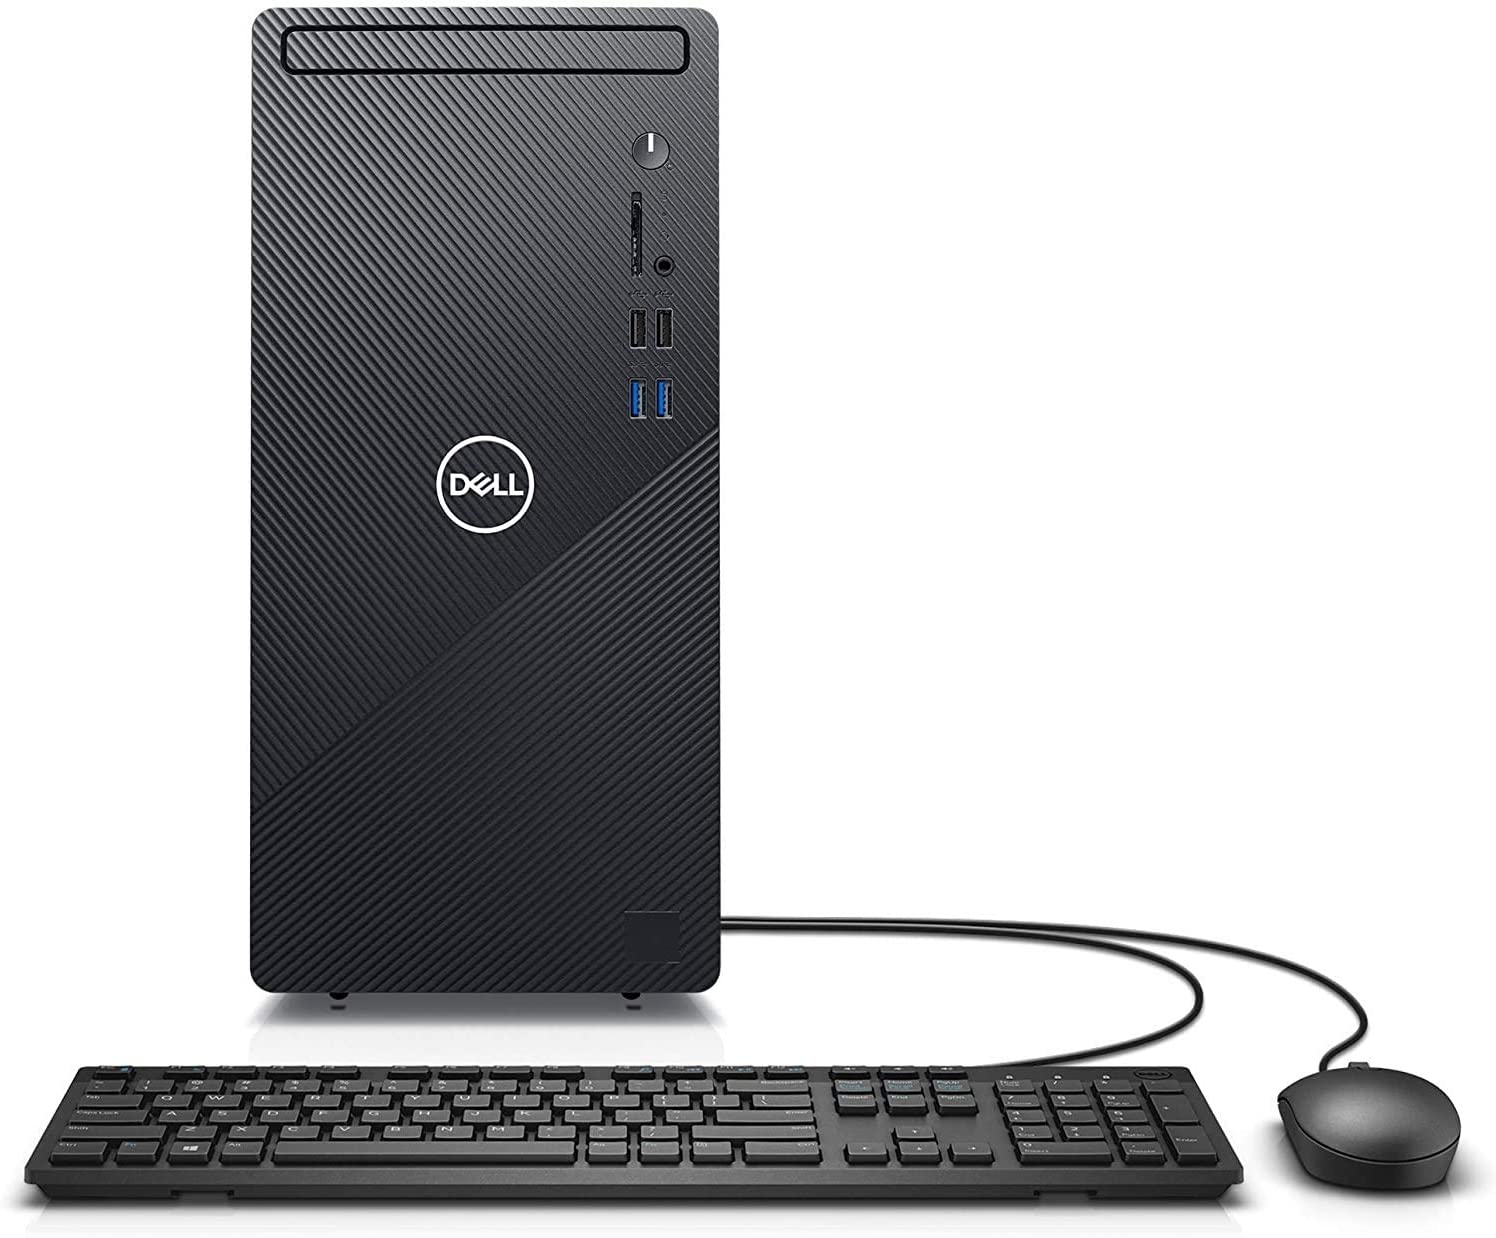 2021 Newest Dell Inspiron High Performance Desktop, Intel Core i5-10400, 12GB DDR4 Memory, 1TB HDD, WiFi, HDMI, Wired Keyboard&Mouse, Windows 10